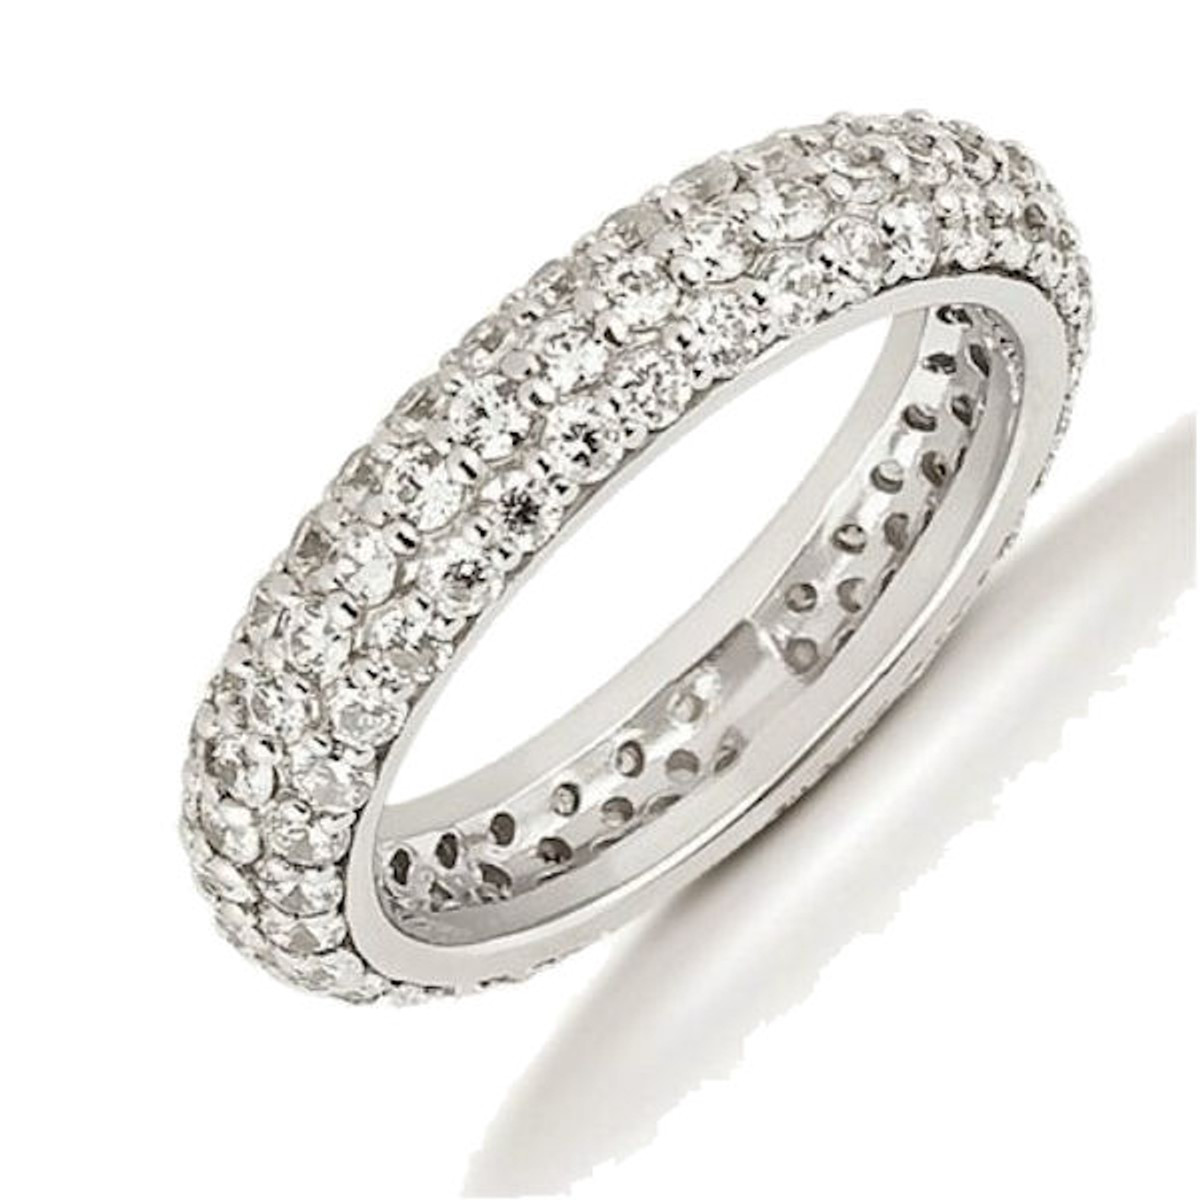 Platinum 3-row 1.70 ct tw Diamond Eternity Ring